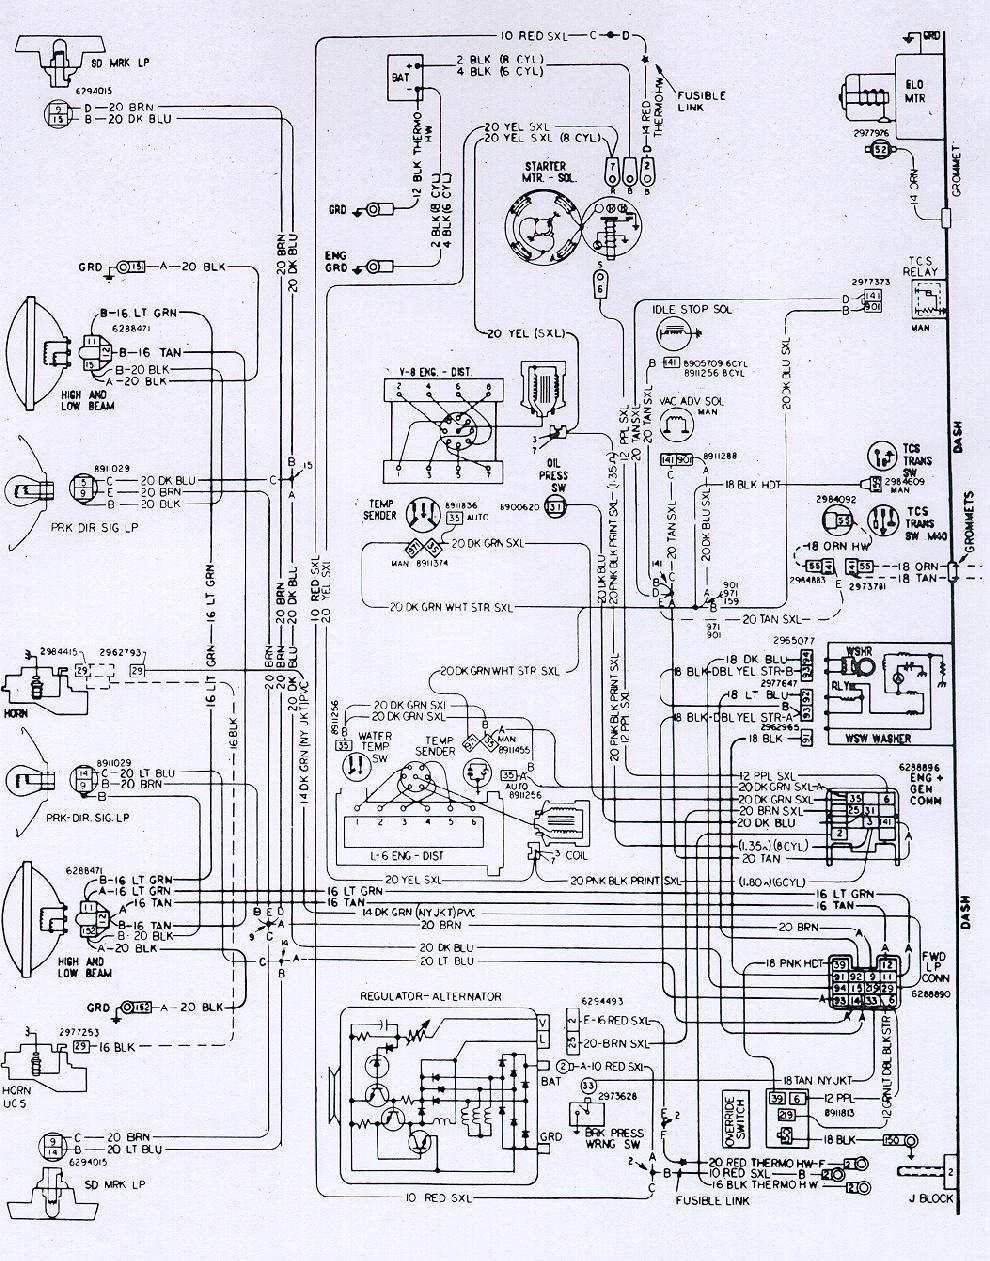 medium resolution of for a 1970 chevy camaro wiring harness wiring diagram third level 1976 chevy camaro wiring diagram 1970 chevy camaro wiring diagram